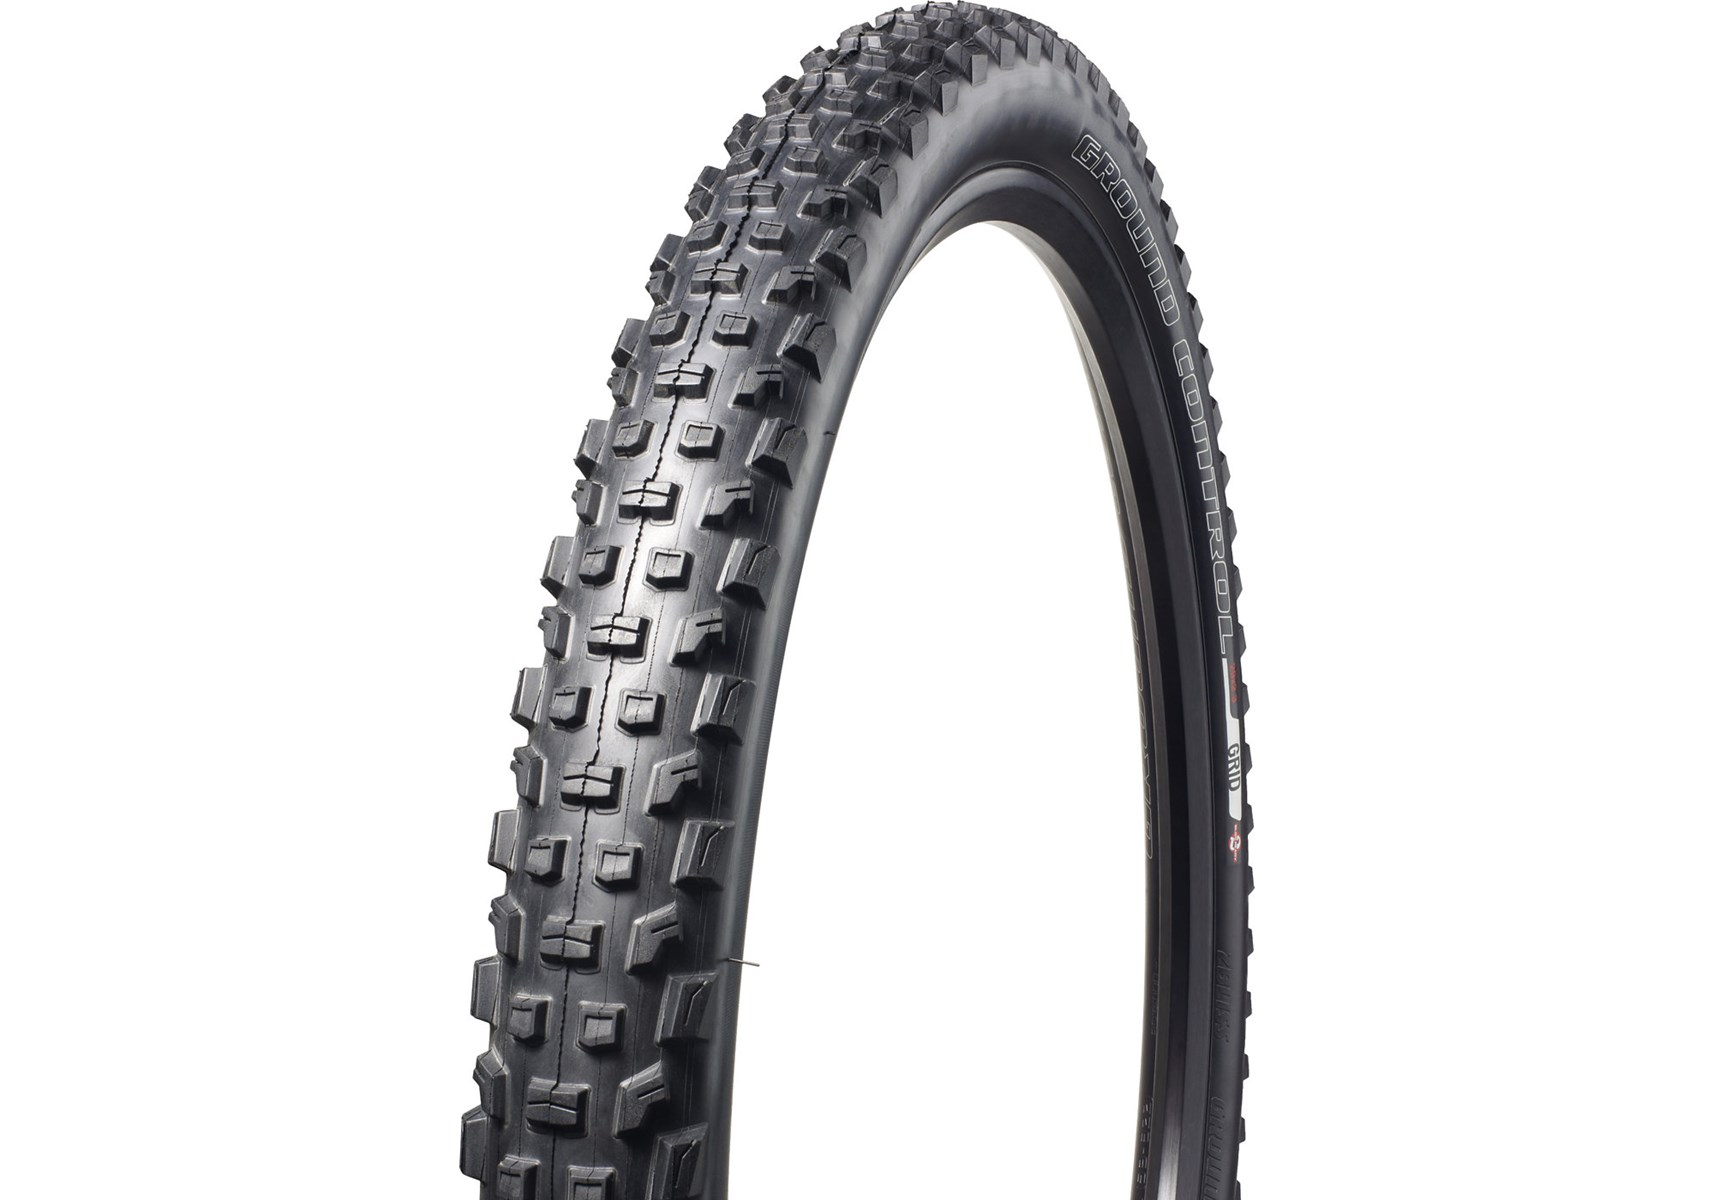 2020 Specialized Ground Control Sport 29er Mountain Bike tyre in Black